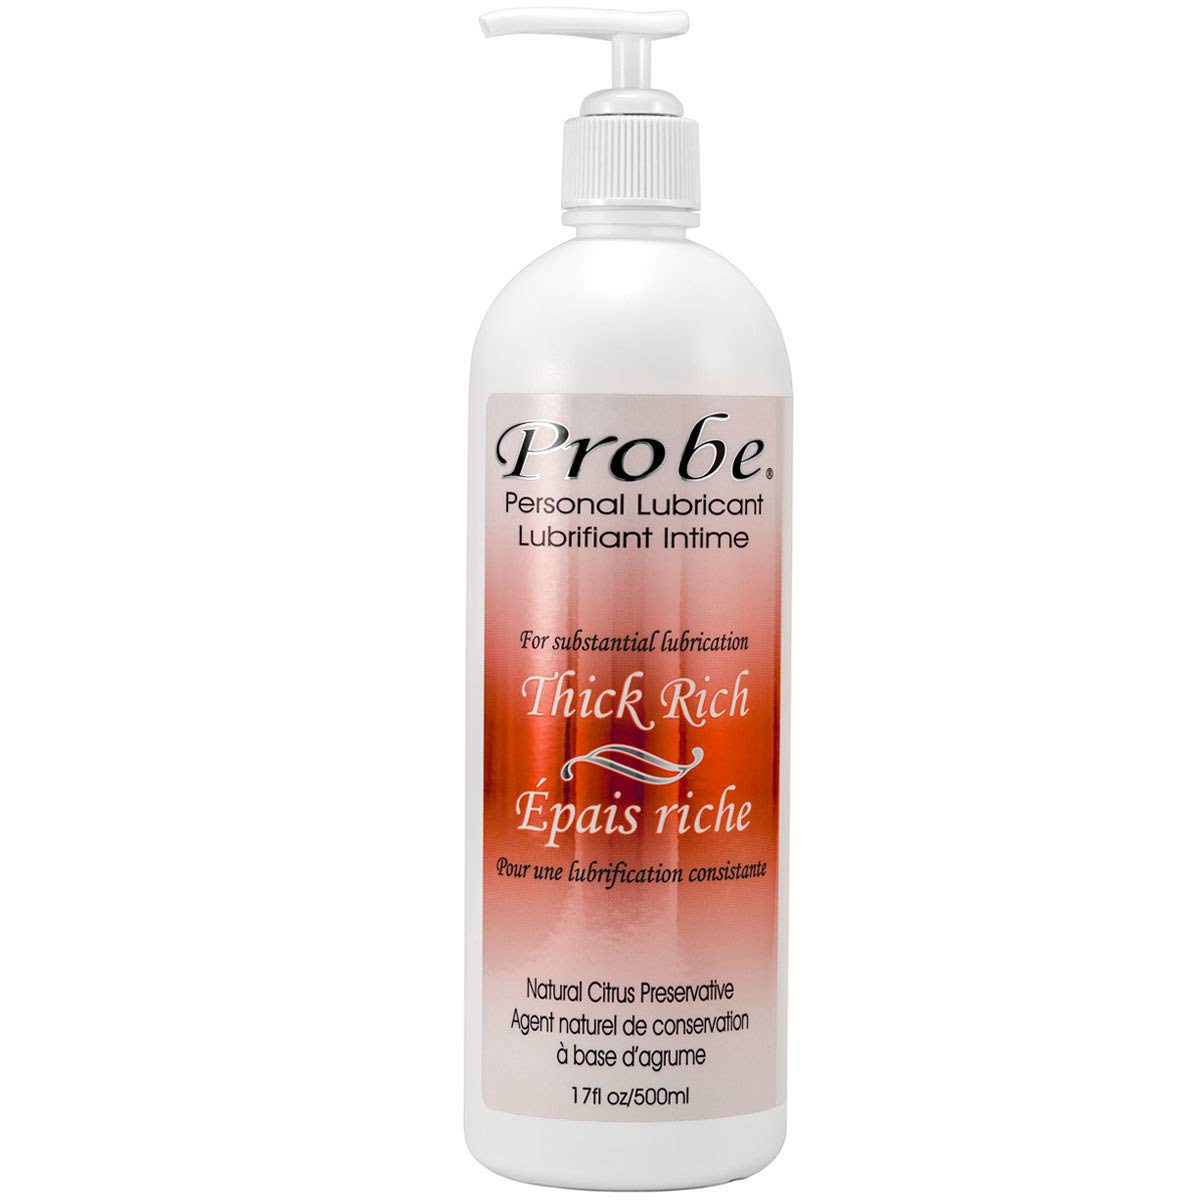 Probe Personal Lubricant Thick Rich 17 Ounce by Probe Lubricant